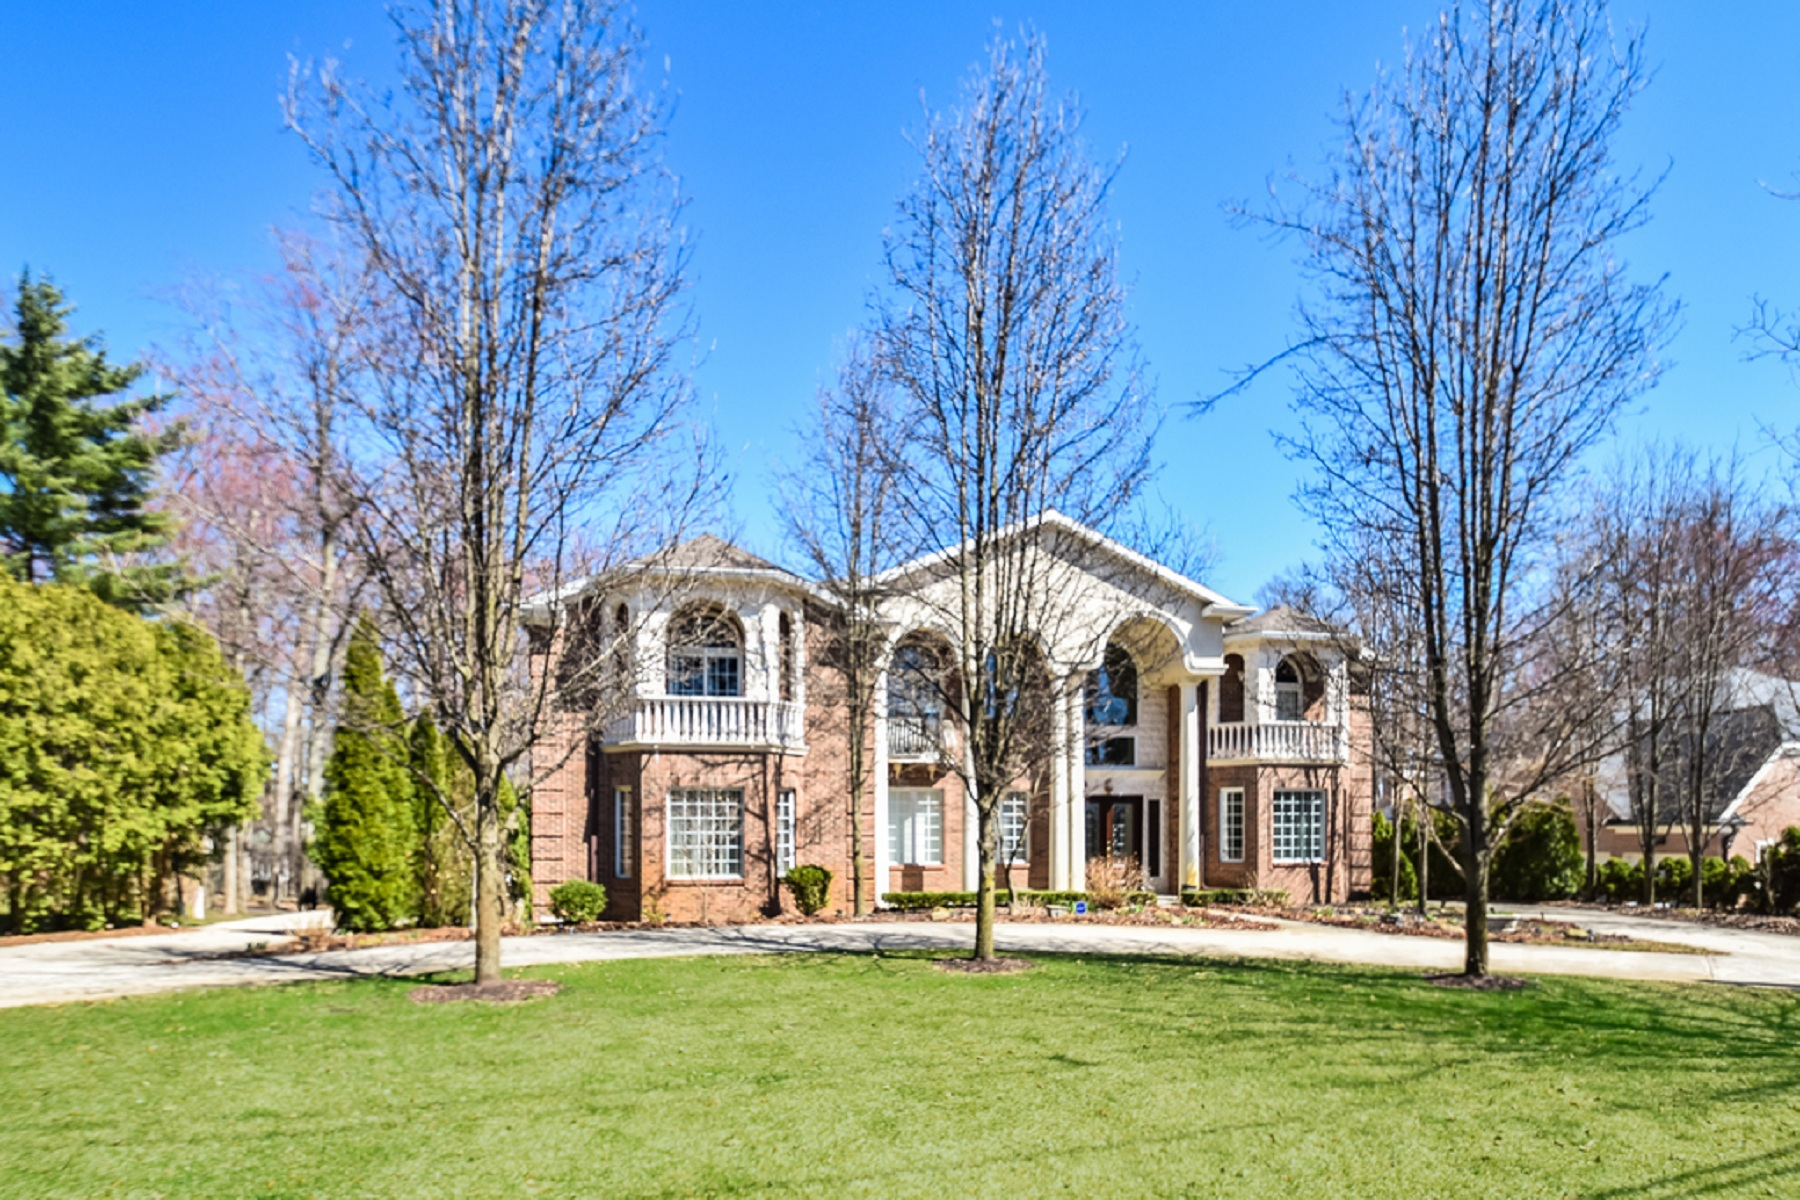 Single Family Homes for Active at Orchard Lake 3131 Erie Drive Orchard Lake, Michigan 48324 United States